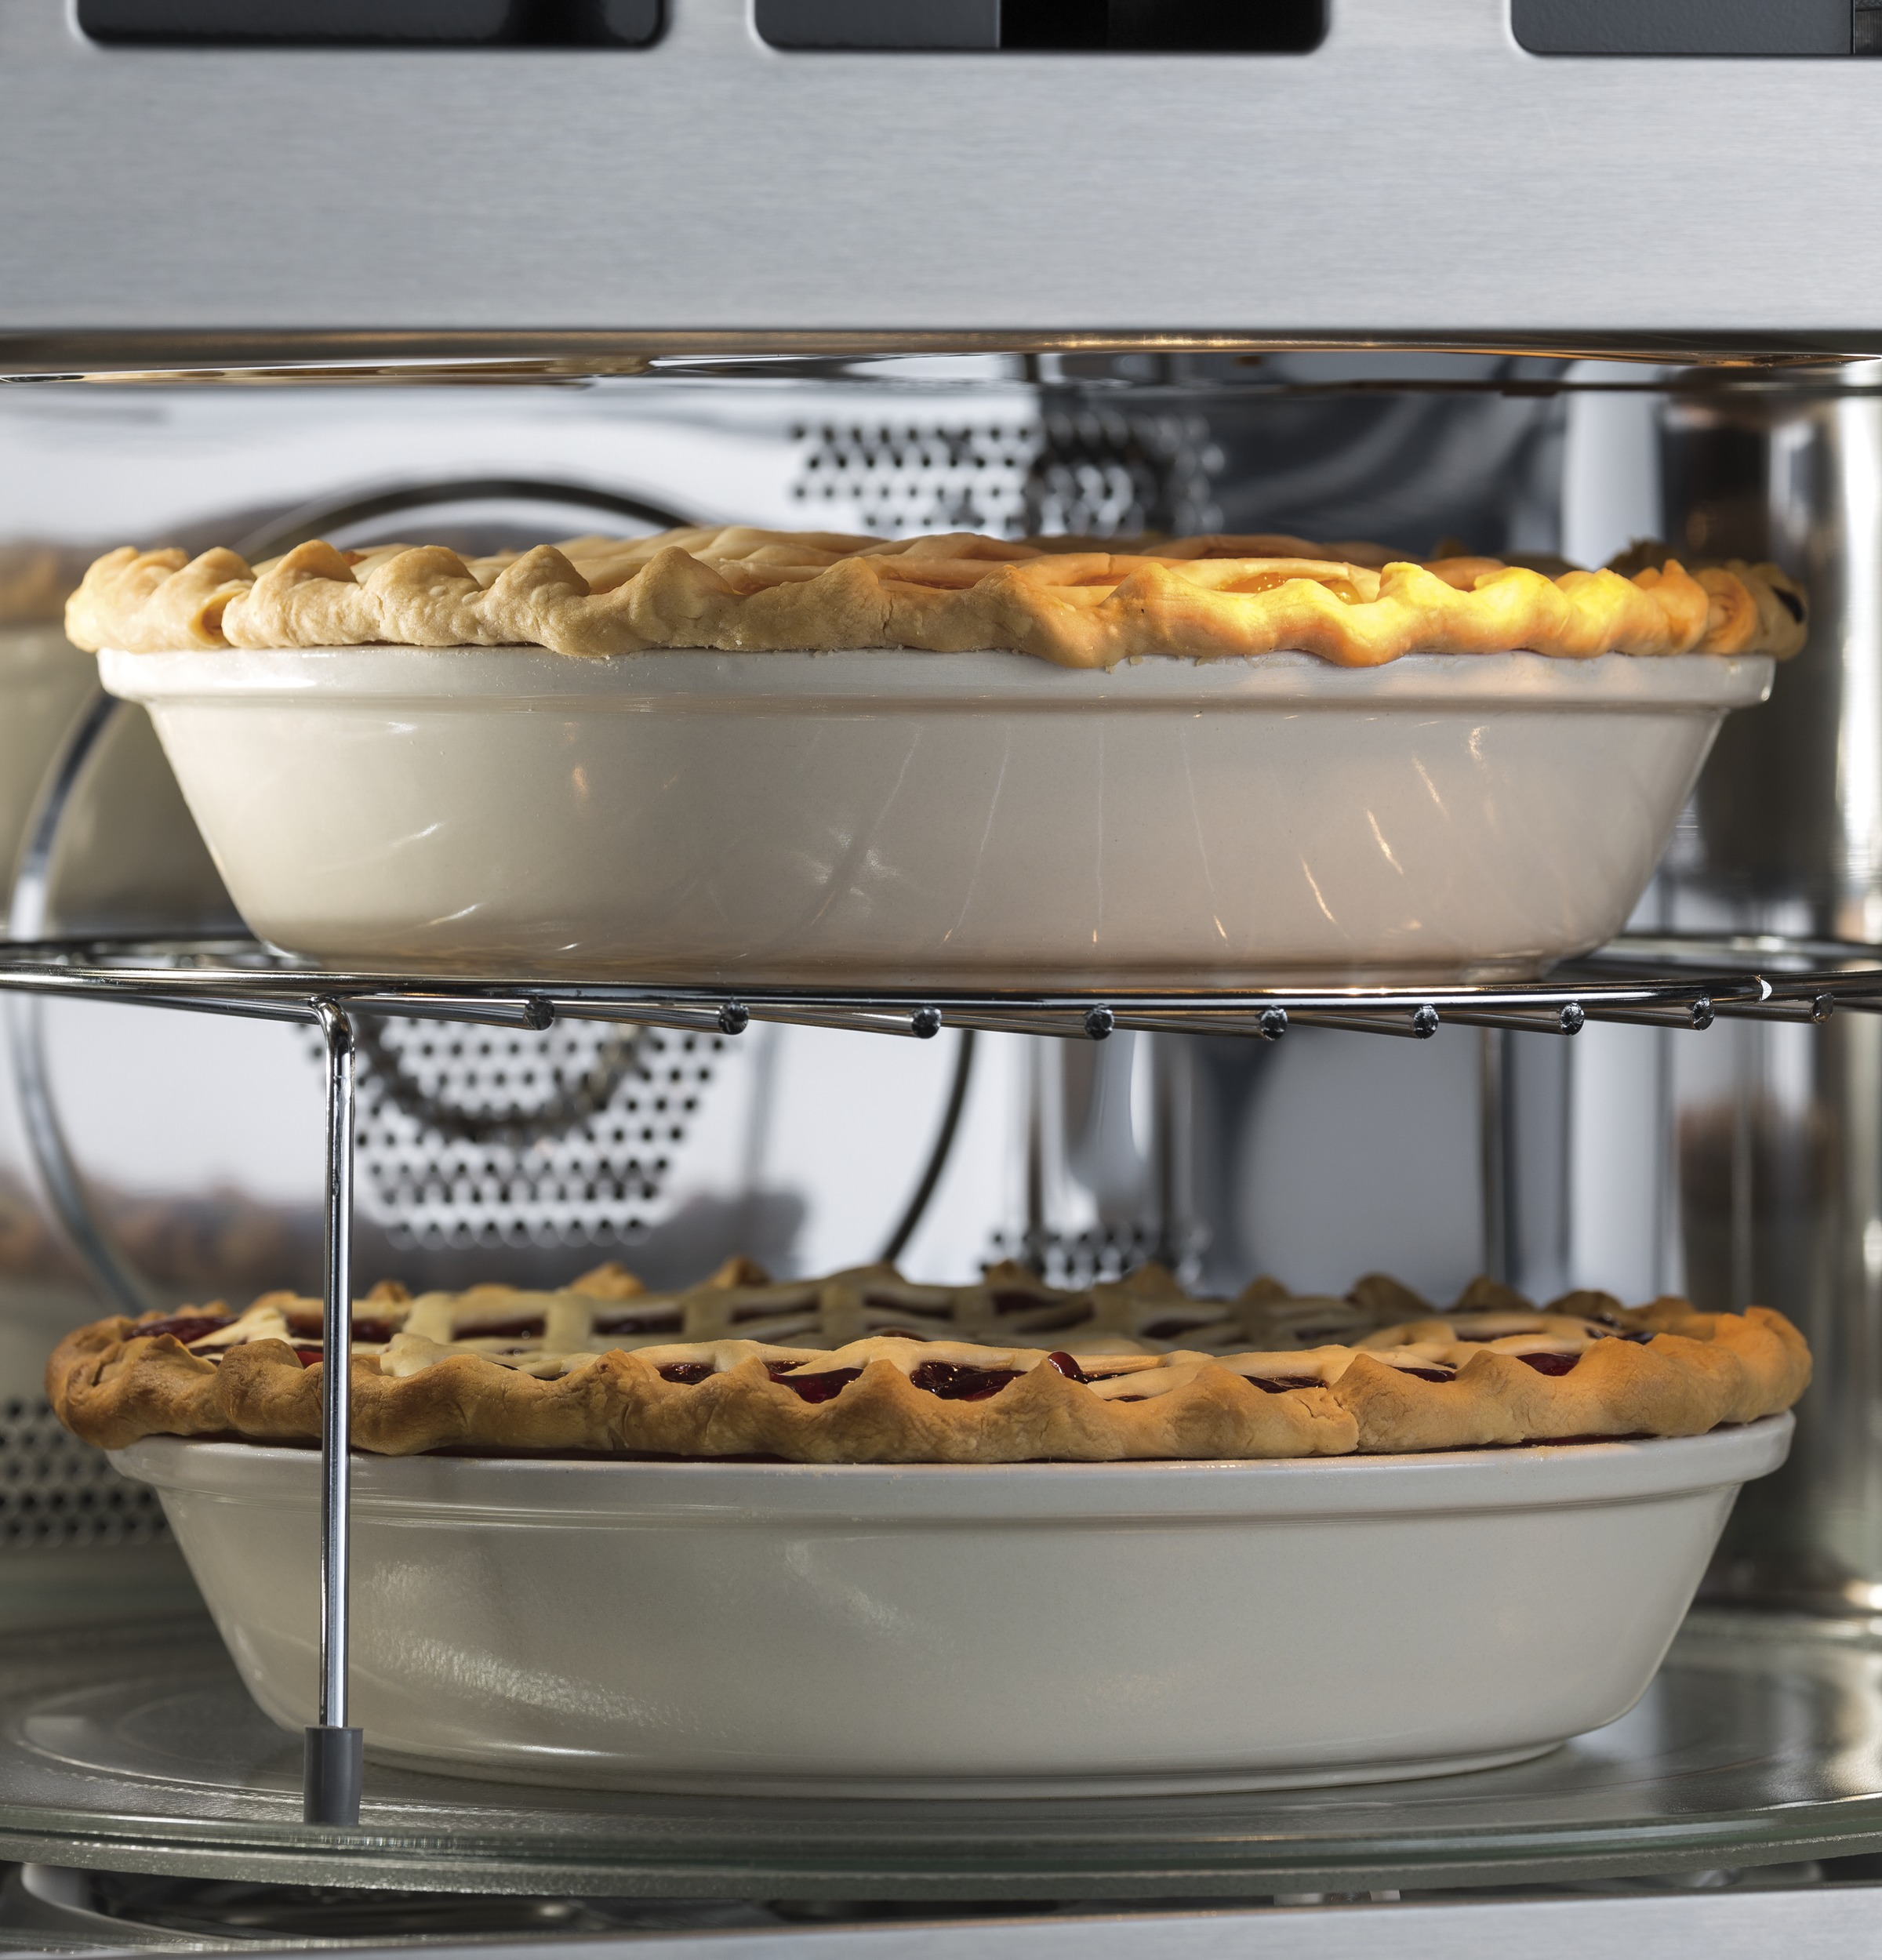 Model: CWB7030SLSS | GE Café™ Series Built-In Microwave/Convection Oven